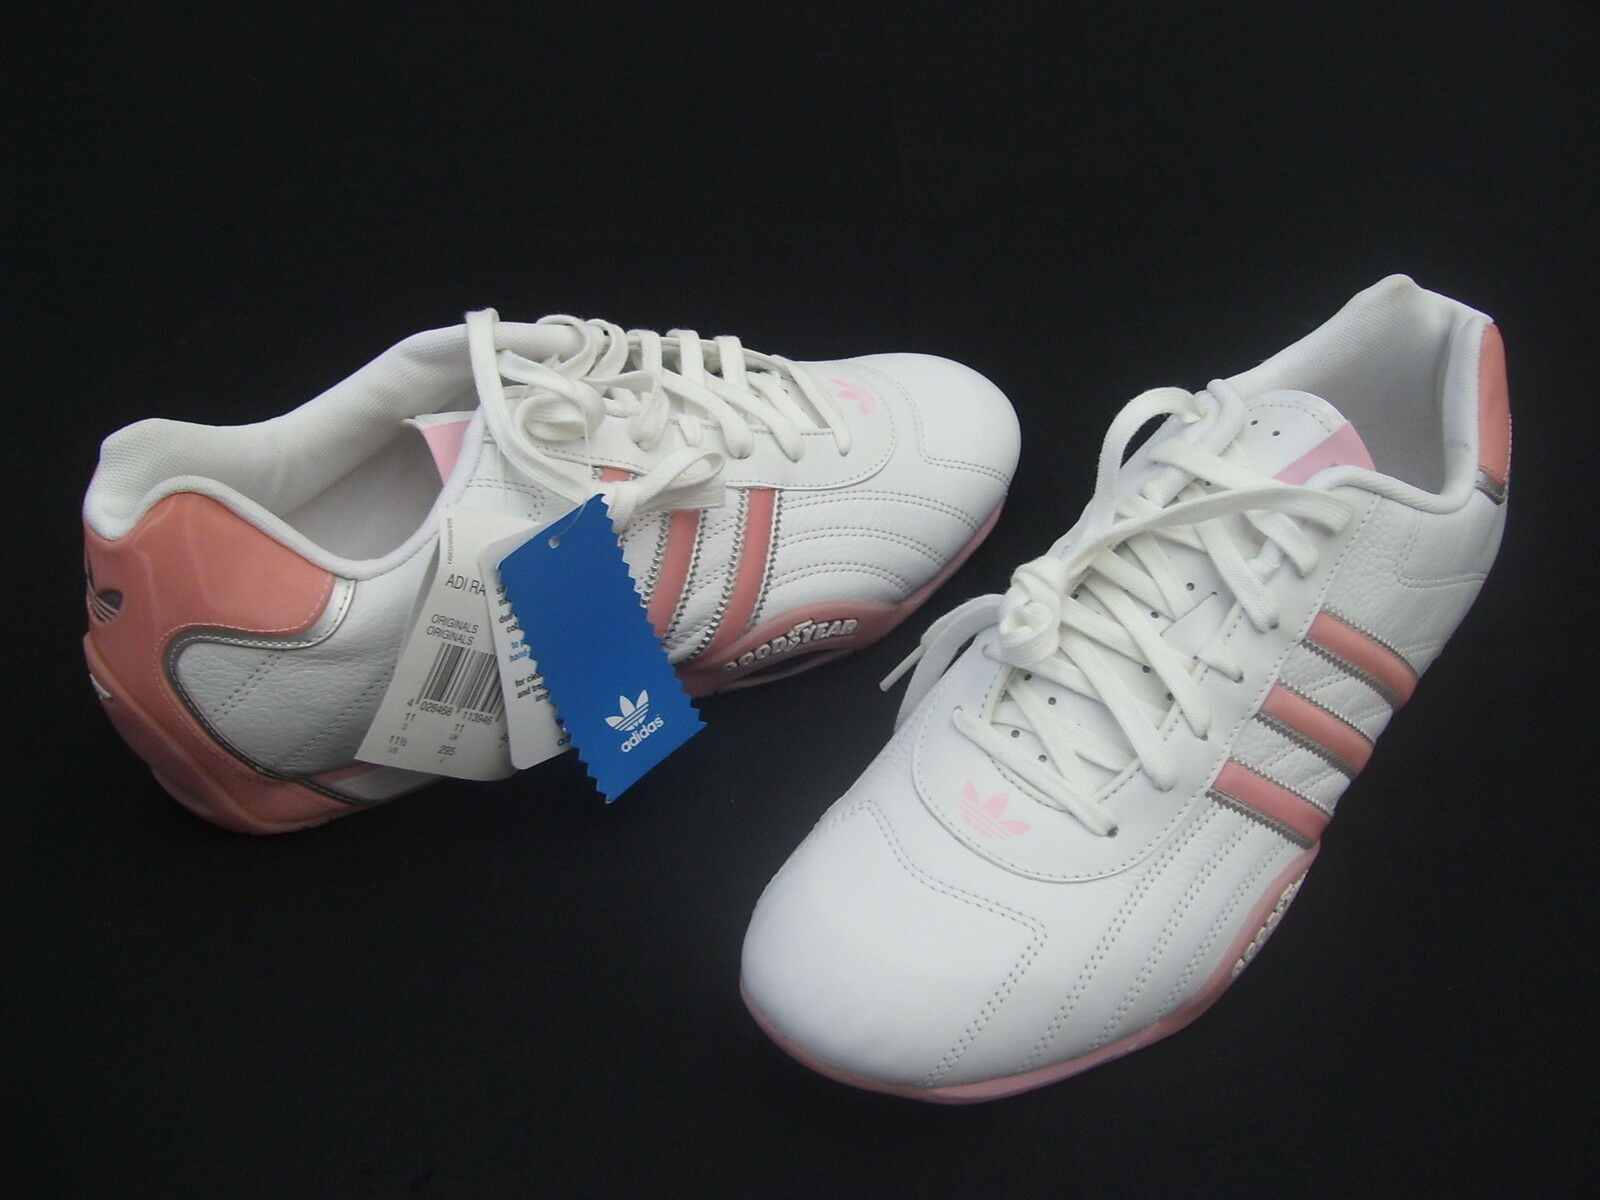 ADIDAS ADI RACER LOW ORIGINALS GOODYEAR LADIES CASUAL TRAINERS SHOES   11.5 NEW